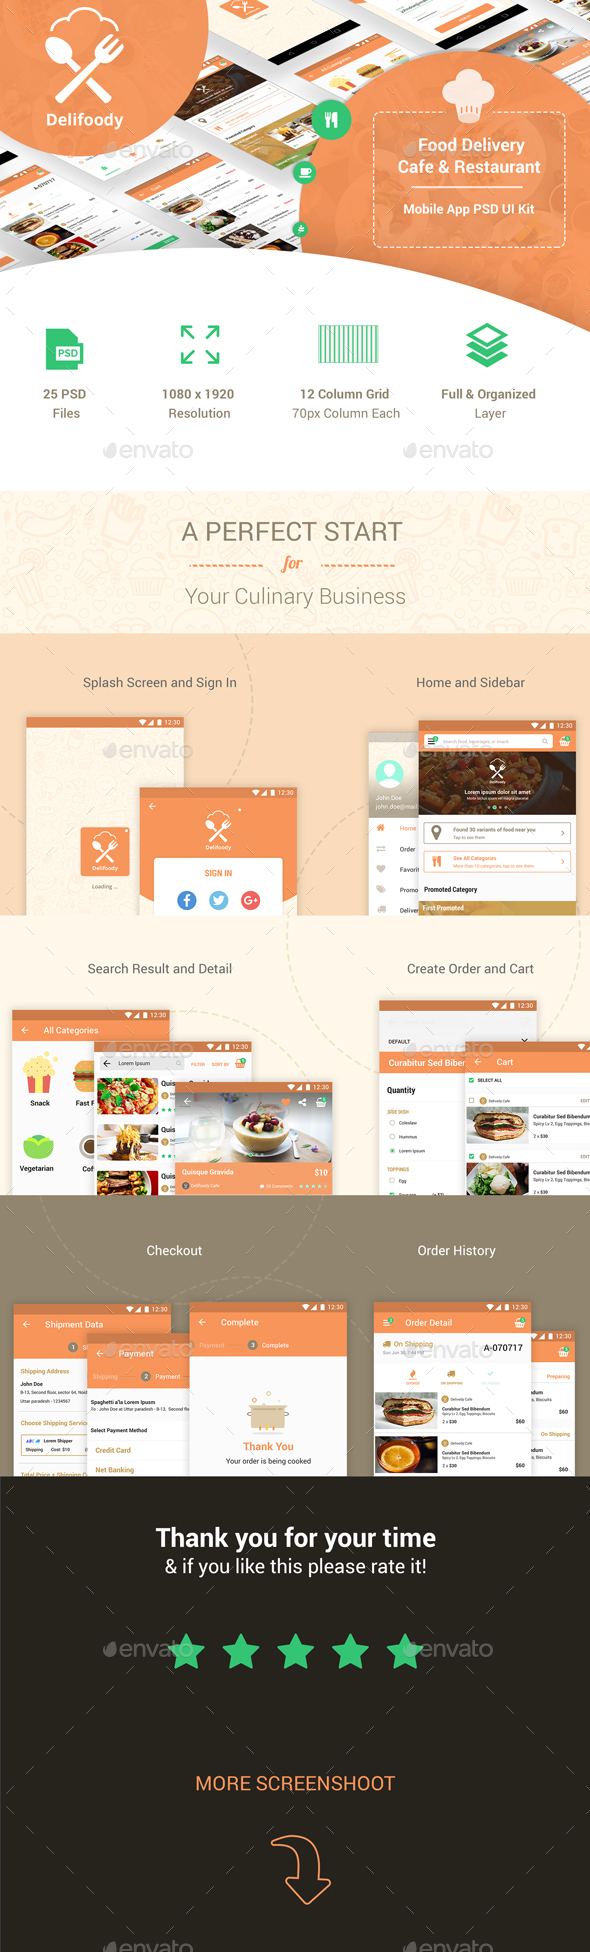 GraphicRiver Delifoody Food Delivery & Restaurant Mobile UI Kit 20652806